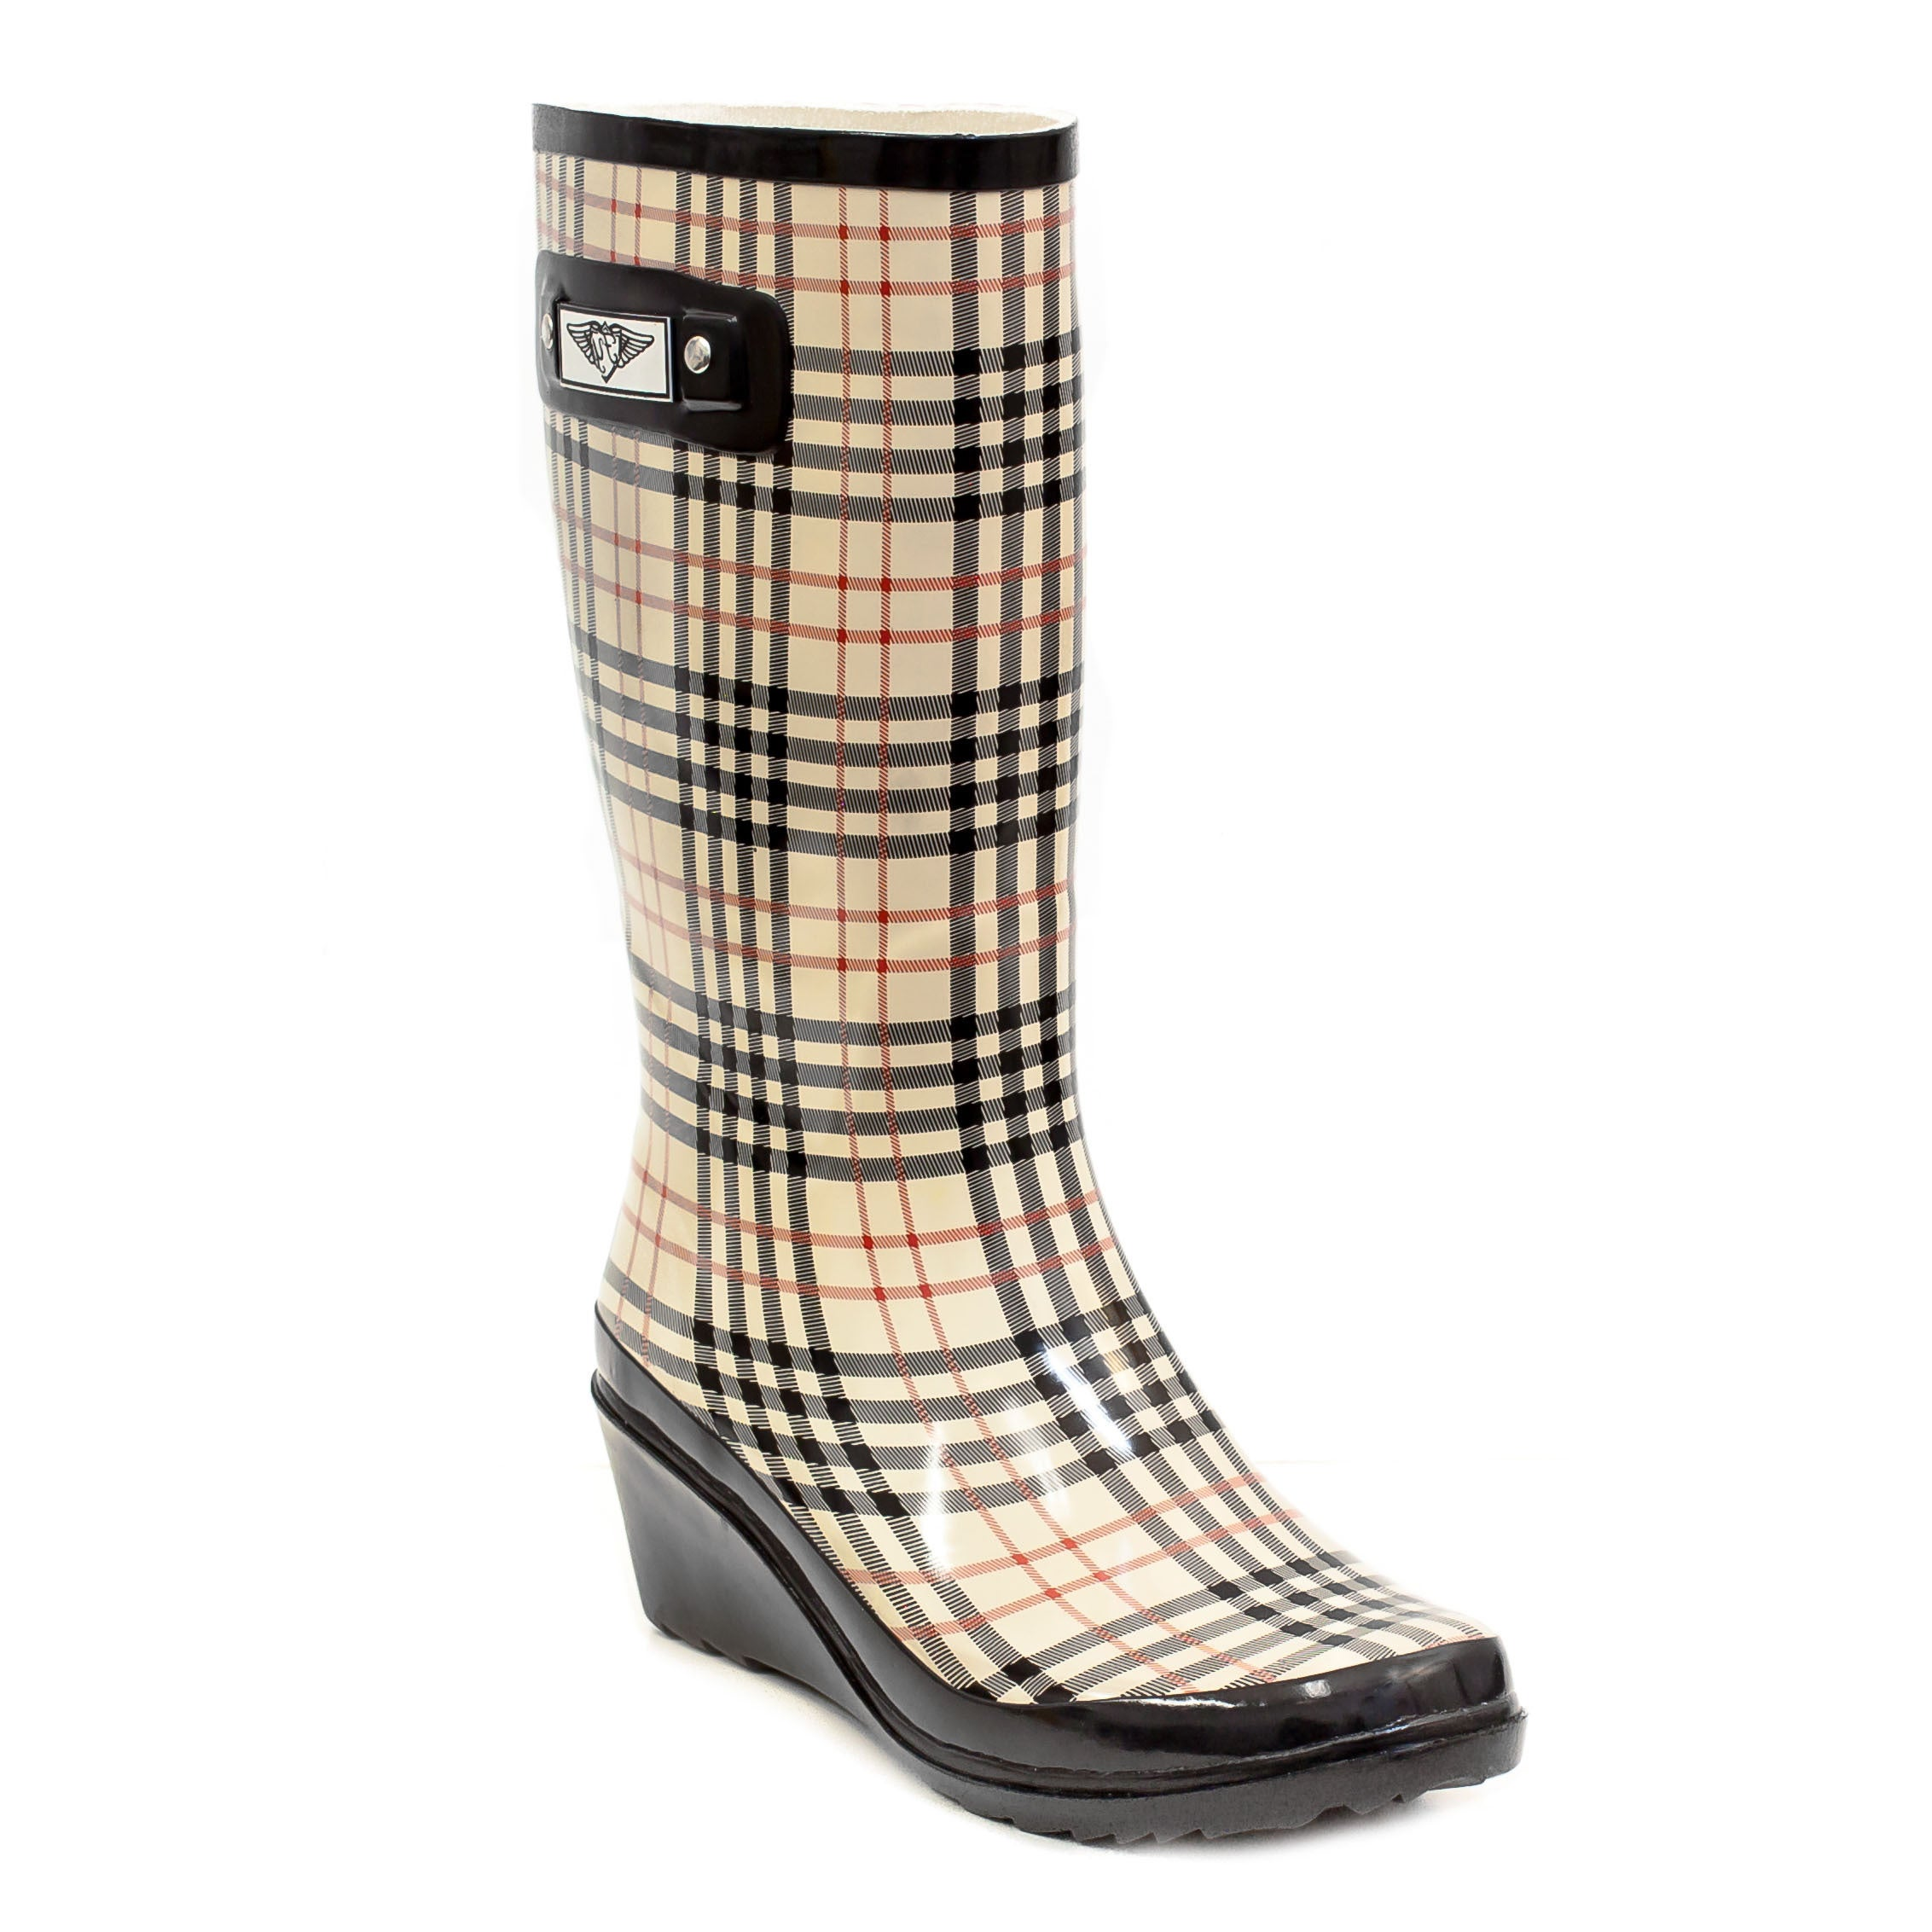 Elegant Who Says Rainy Days Have To Be Dreary? Add A Little Fun To Wet Weather With These Cute Rain Boots! Done In An Adorable Plaid Pattern, Theyre Styled With A Rounded Toe And A Rugged, Textured Outsole From Adi Designs